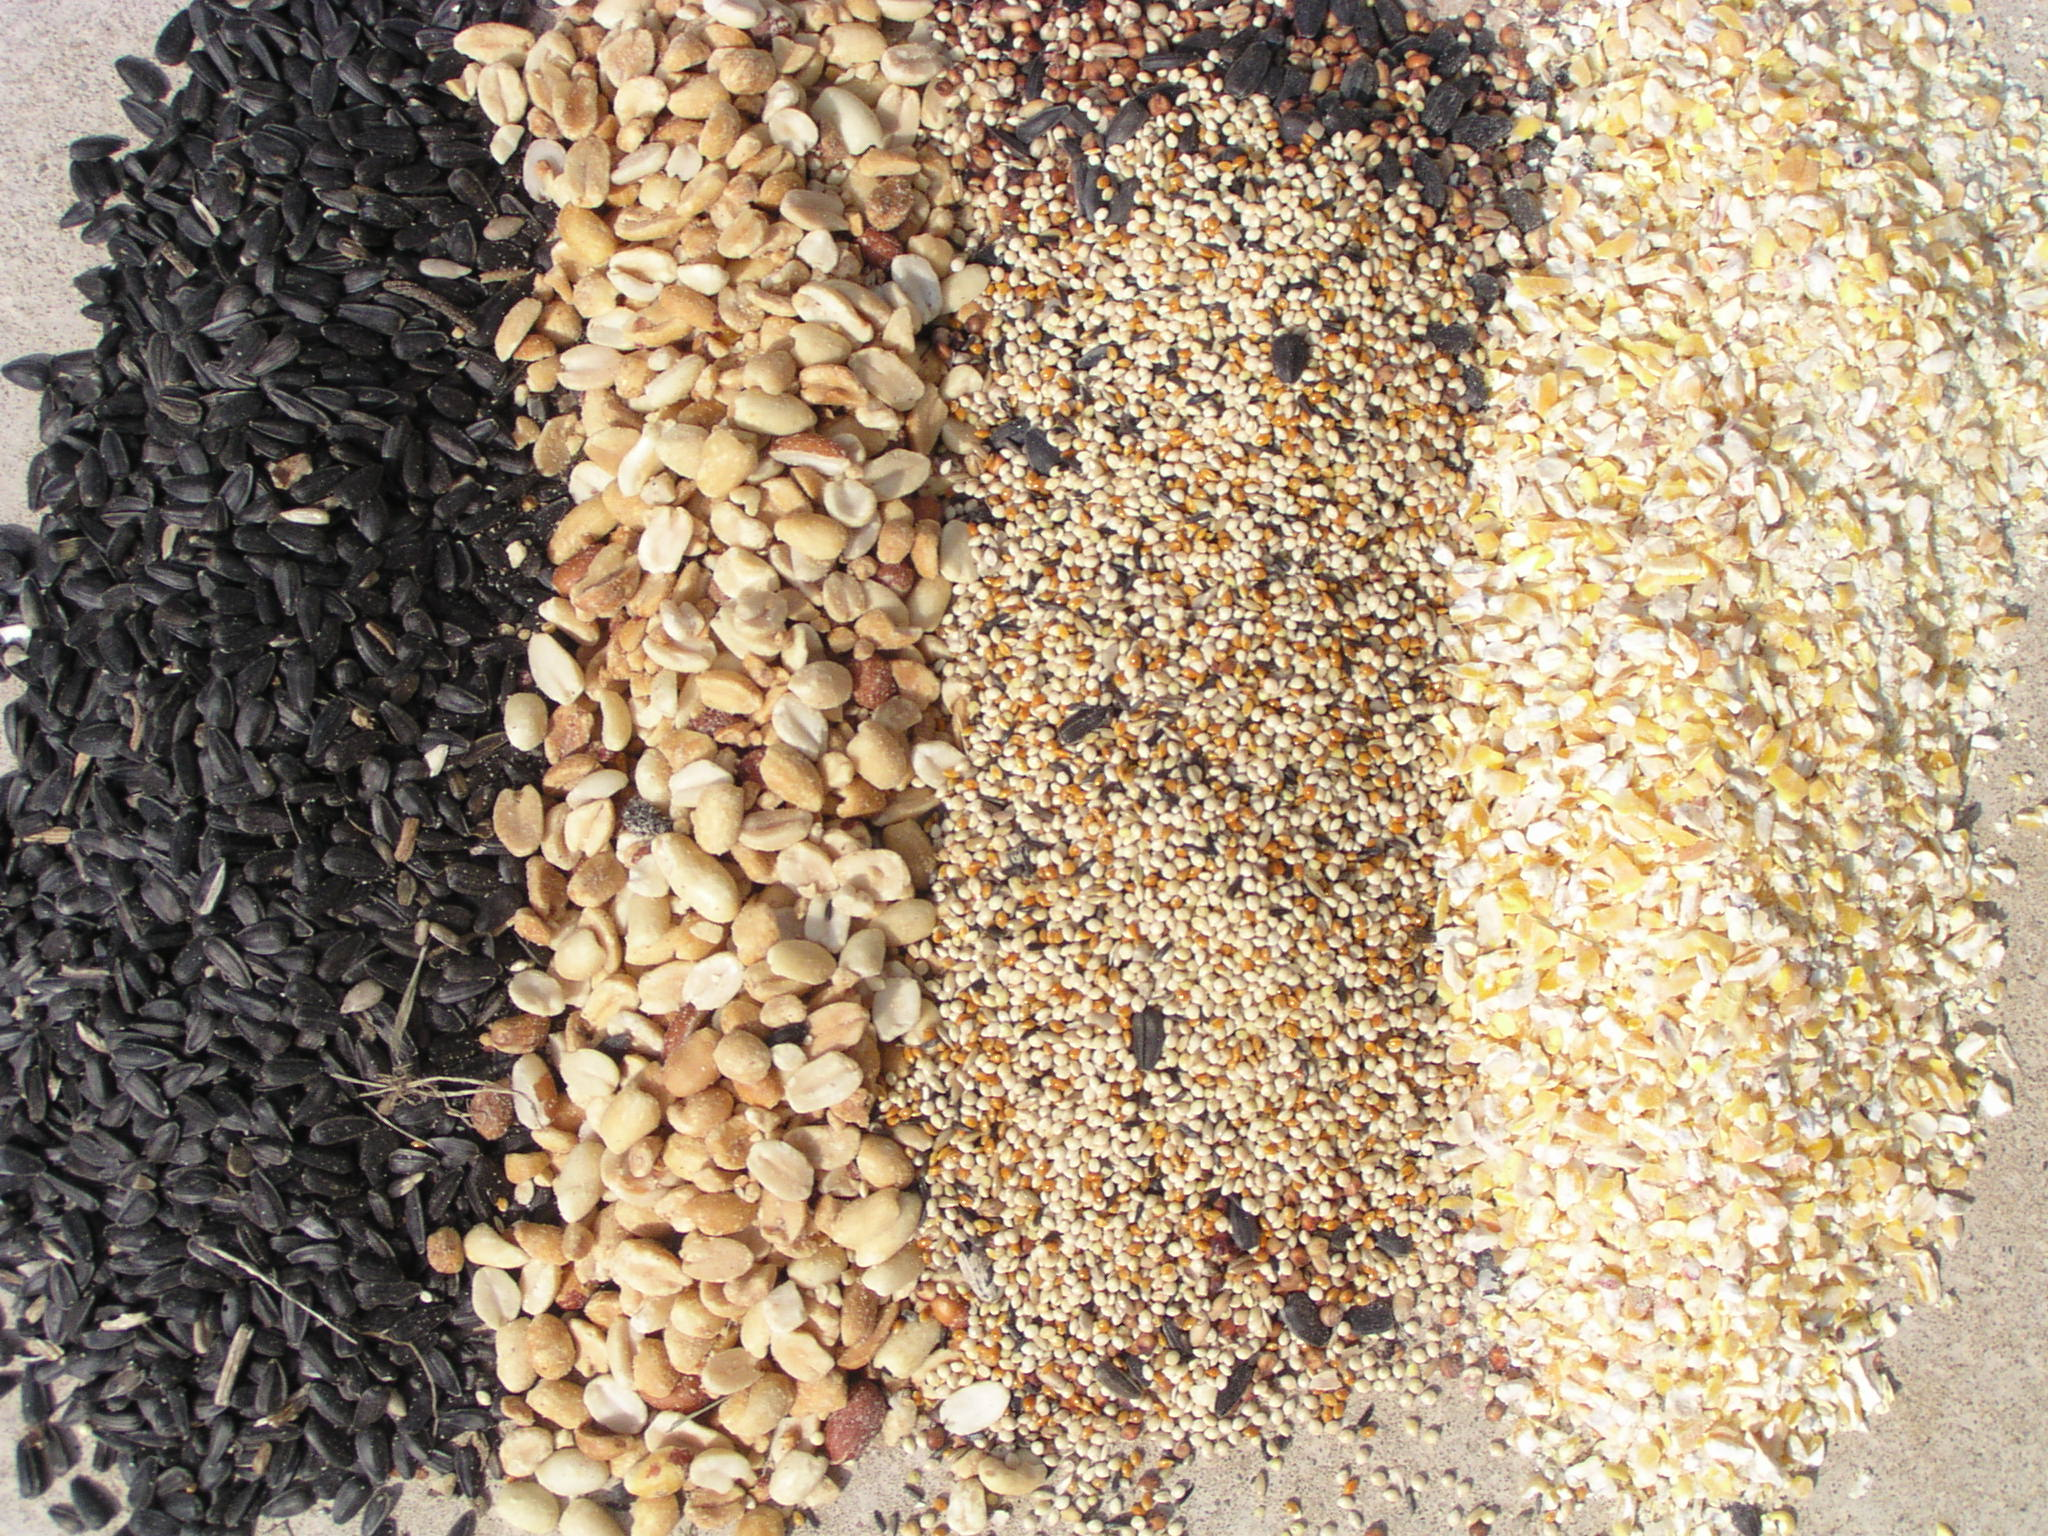 From left to right: Nyjer seed, peanuts, millet, and cracked corn.